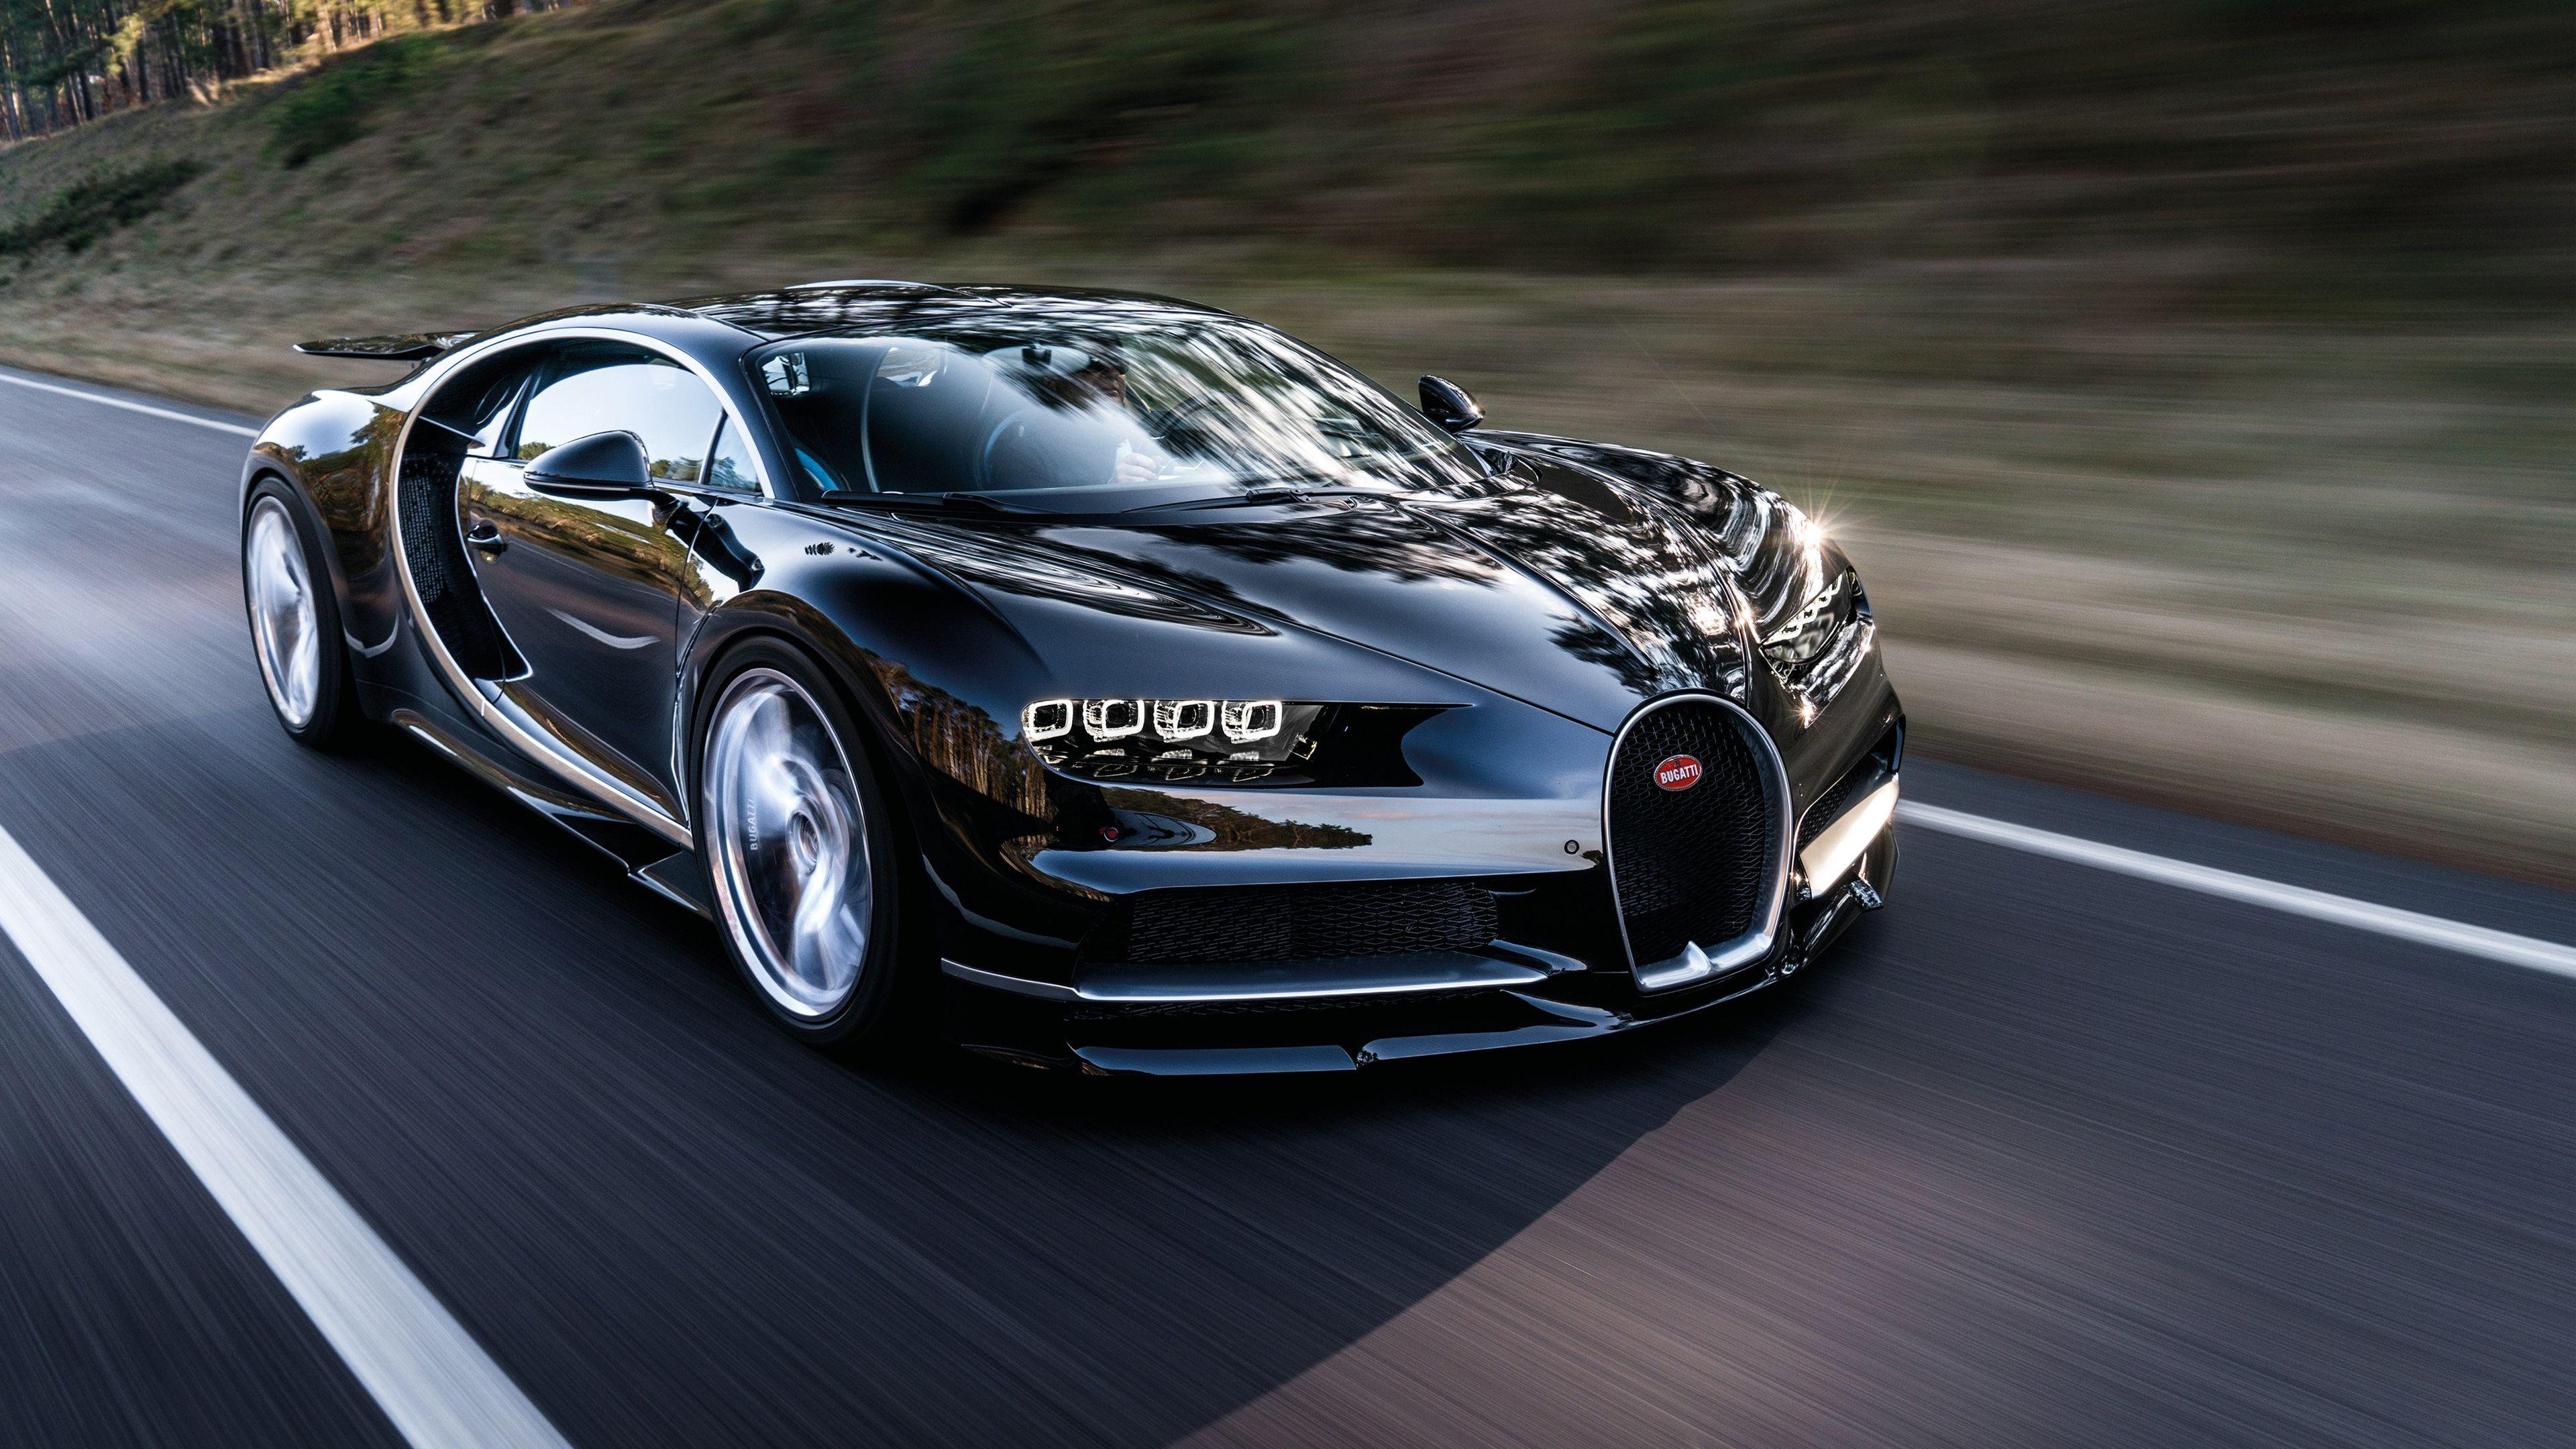 Bugatti Chiron Wallpapers Wallpaper Cave